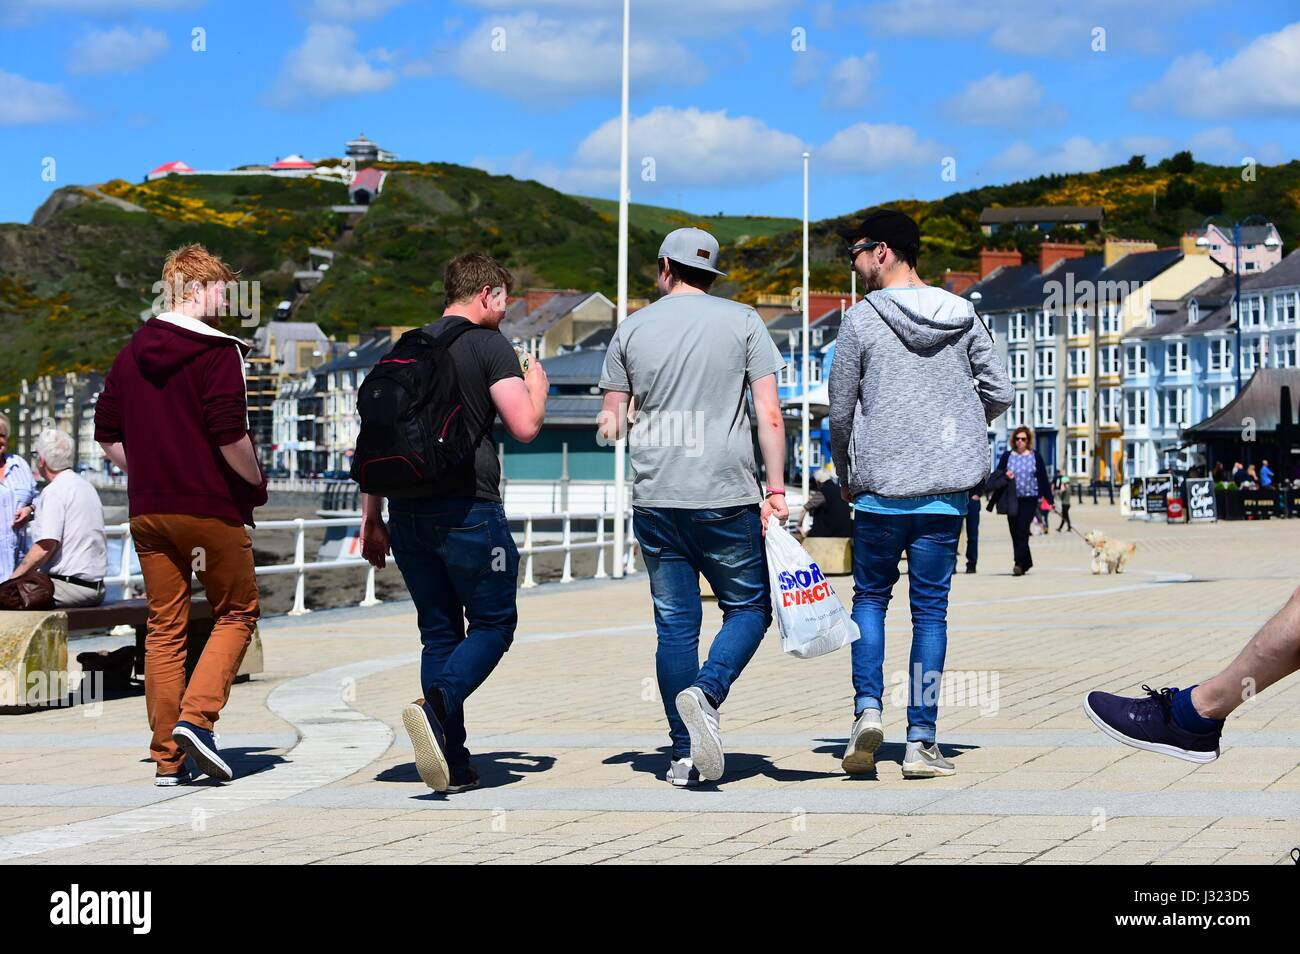 Aberystwyth, Wales, UK. 2nd May, 2017. UK Weather: People enjoying a glorious blue skies and a warm sunny spring - Stock Image